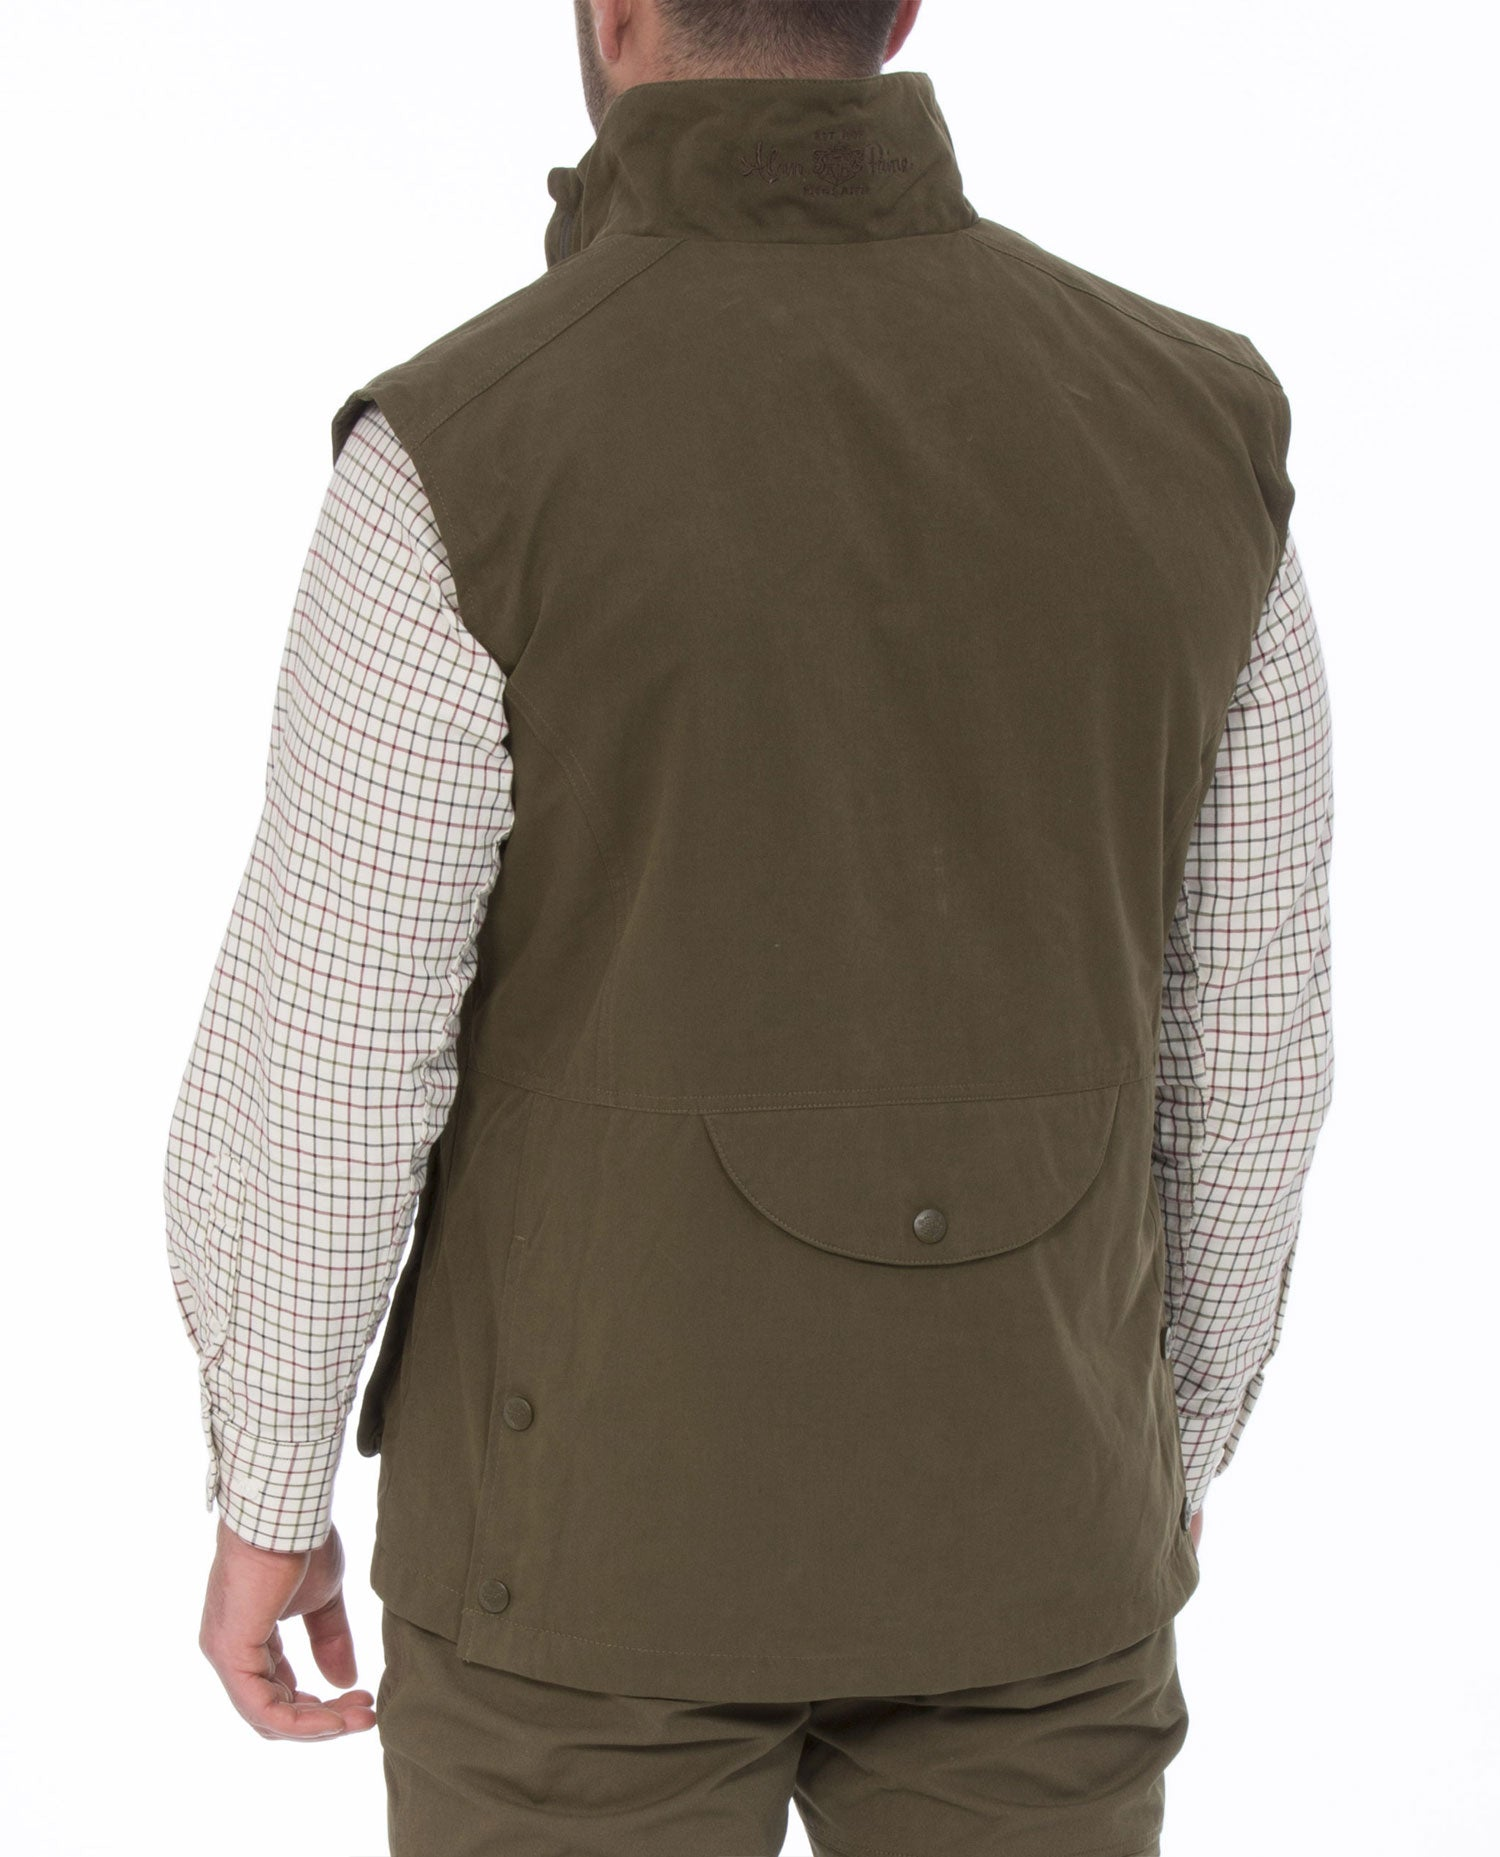 Rear view Dunswell Men's Waterproof Waistcoat by Alan Paine